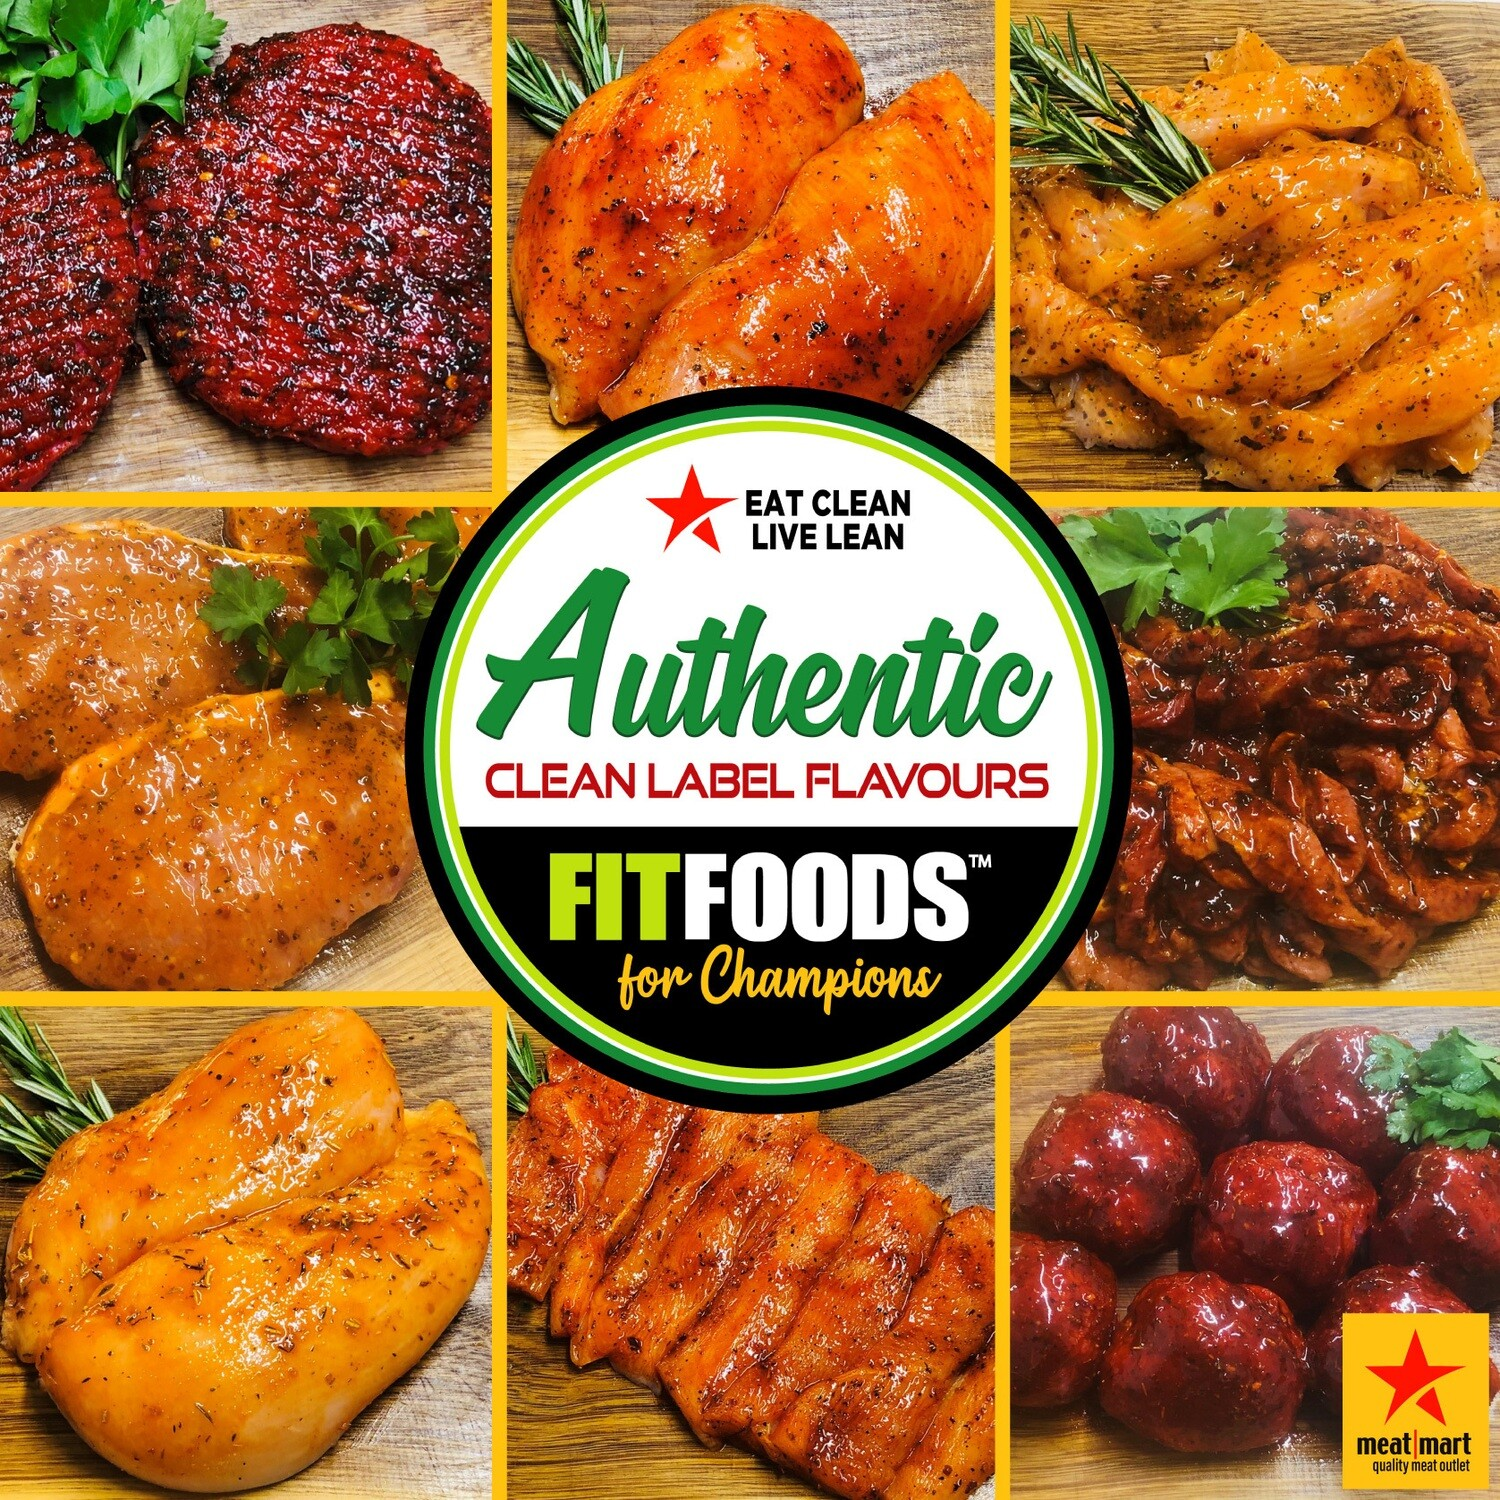 FIT FOODS TURKEY - ANY 2 PACKS FOR £5.00